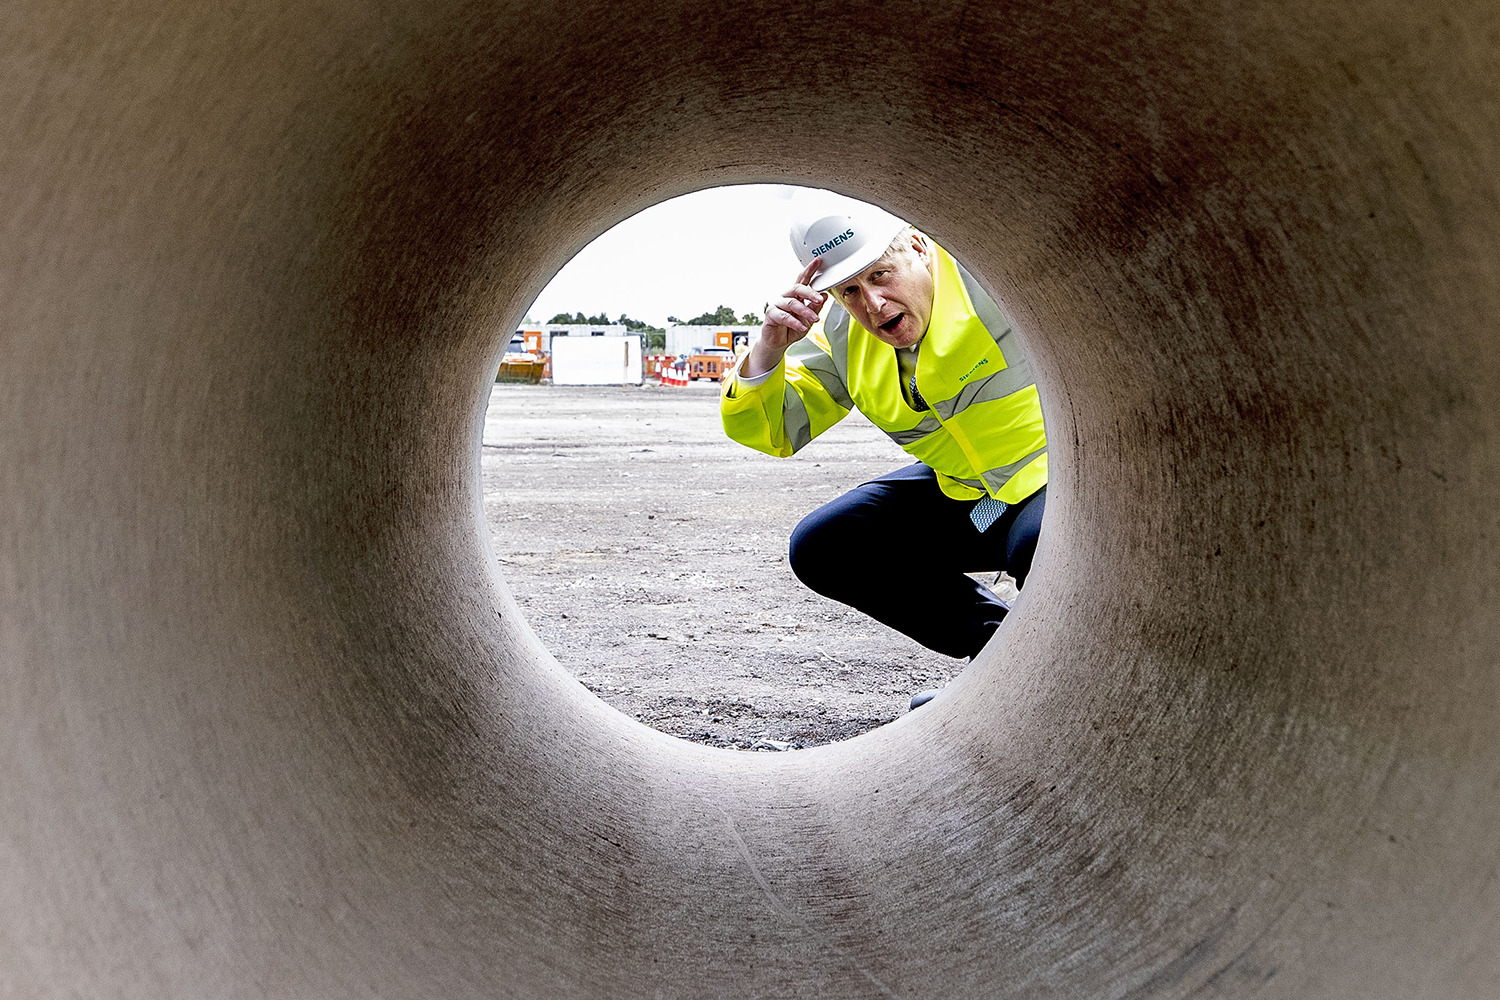 Prime Minister Boris Johnson looks through a large bore pipe during a visit to the Siemens Mobility rail factory construction site in Goole, England, on July 6. Peter Byrne/WPA Pool/Getty Images